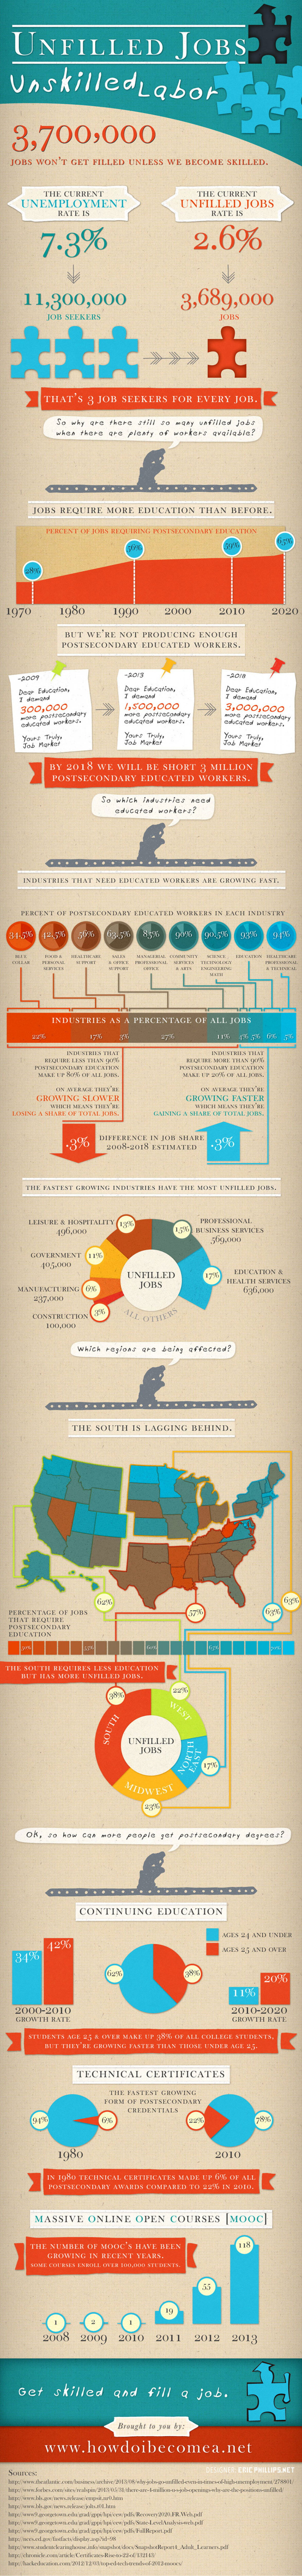 Unfilled Jobs, Unskilled Labor Infographic